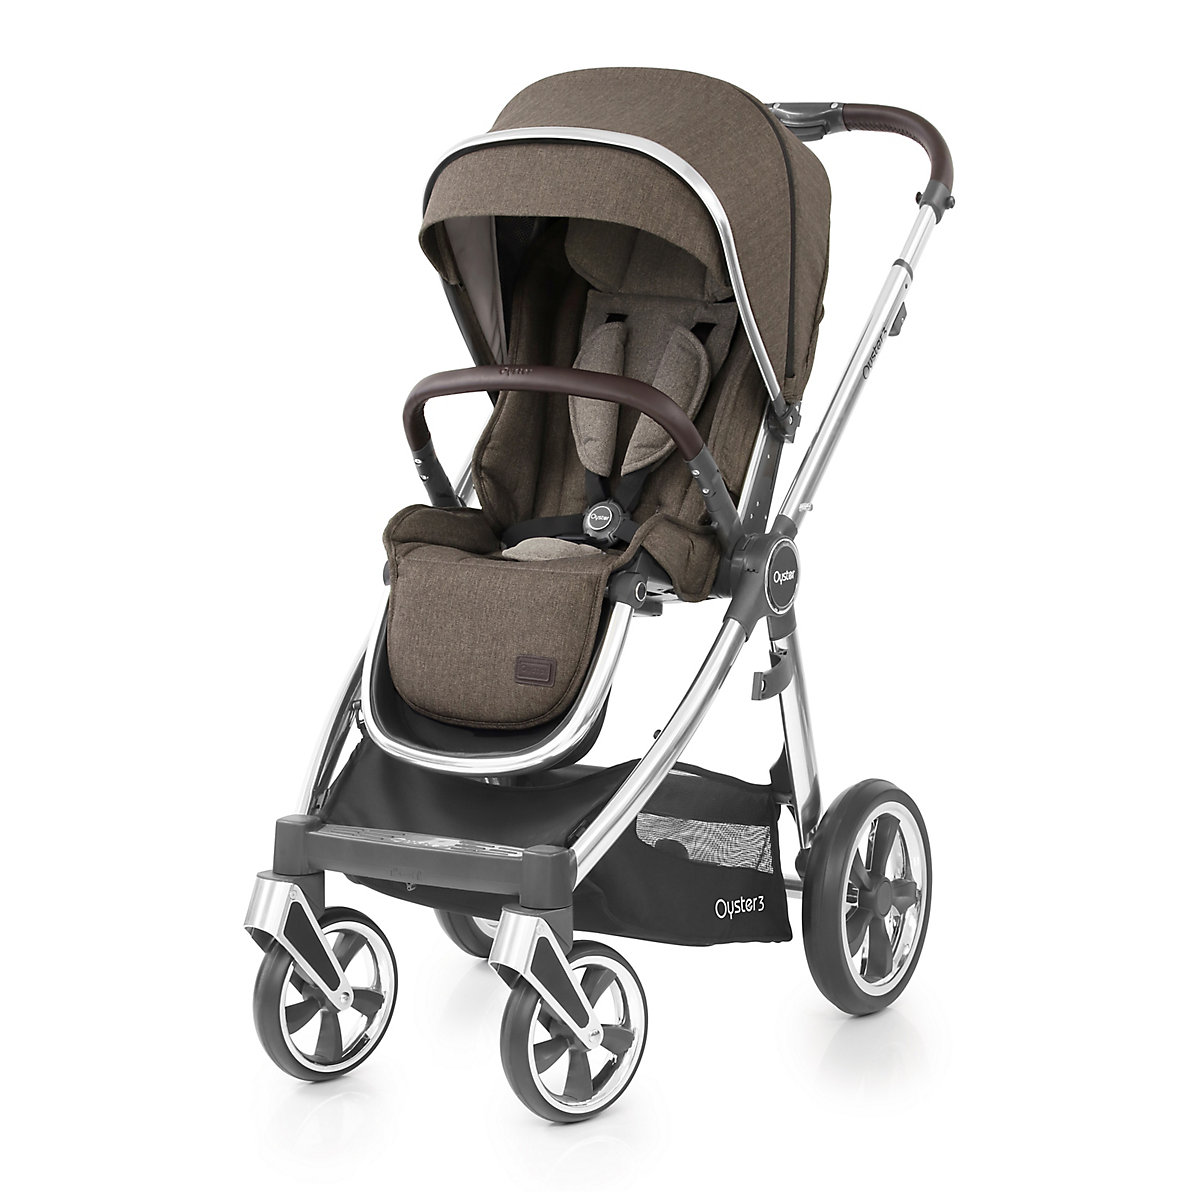 BabyStyle Oyster 3 Pushchair